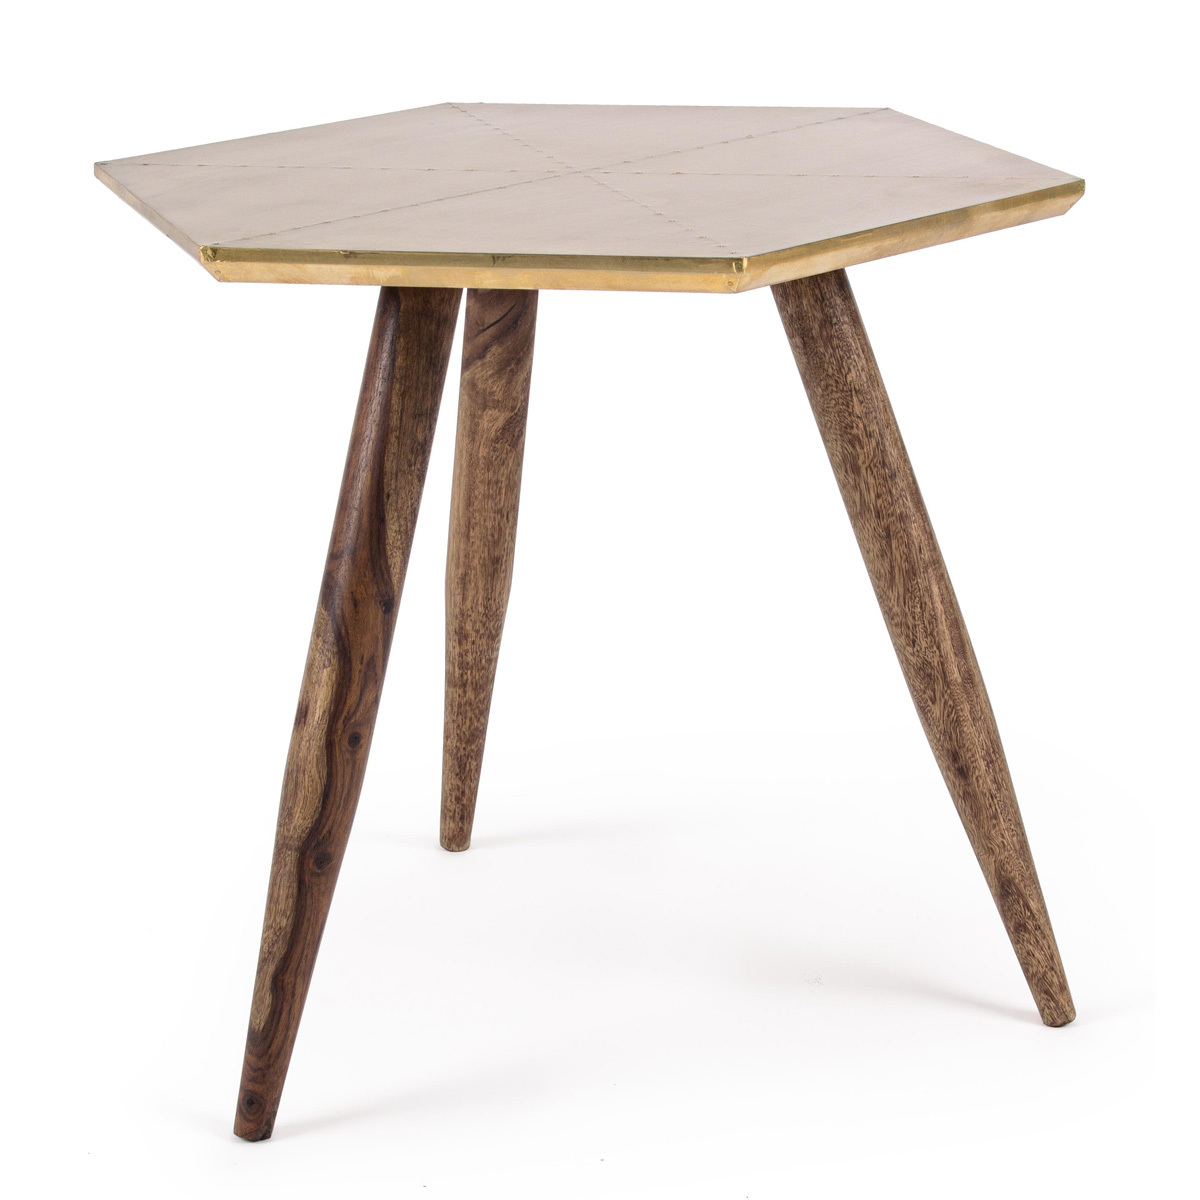 Photos 1: Bizzotto Wooden table with brass top 0745455